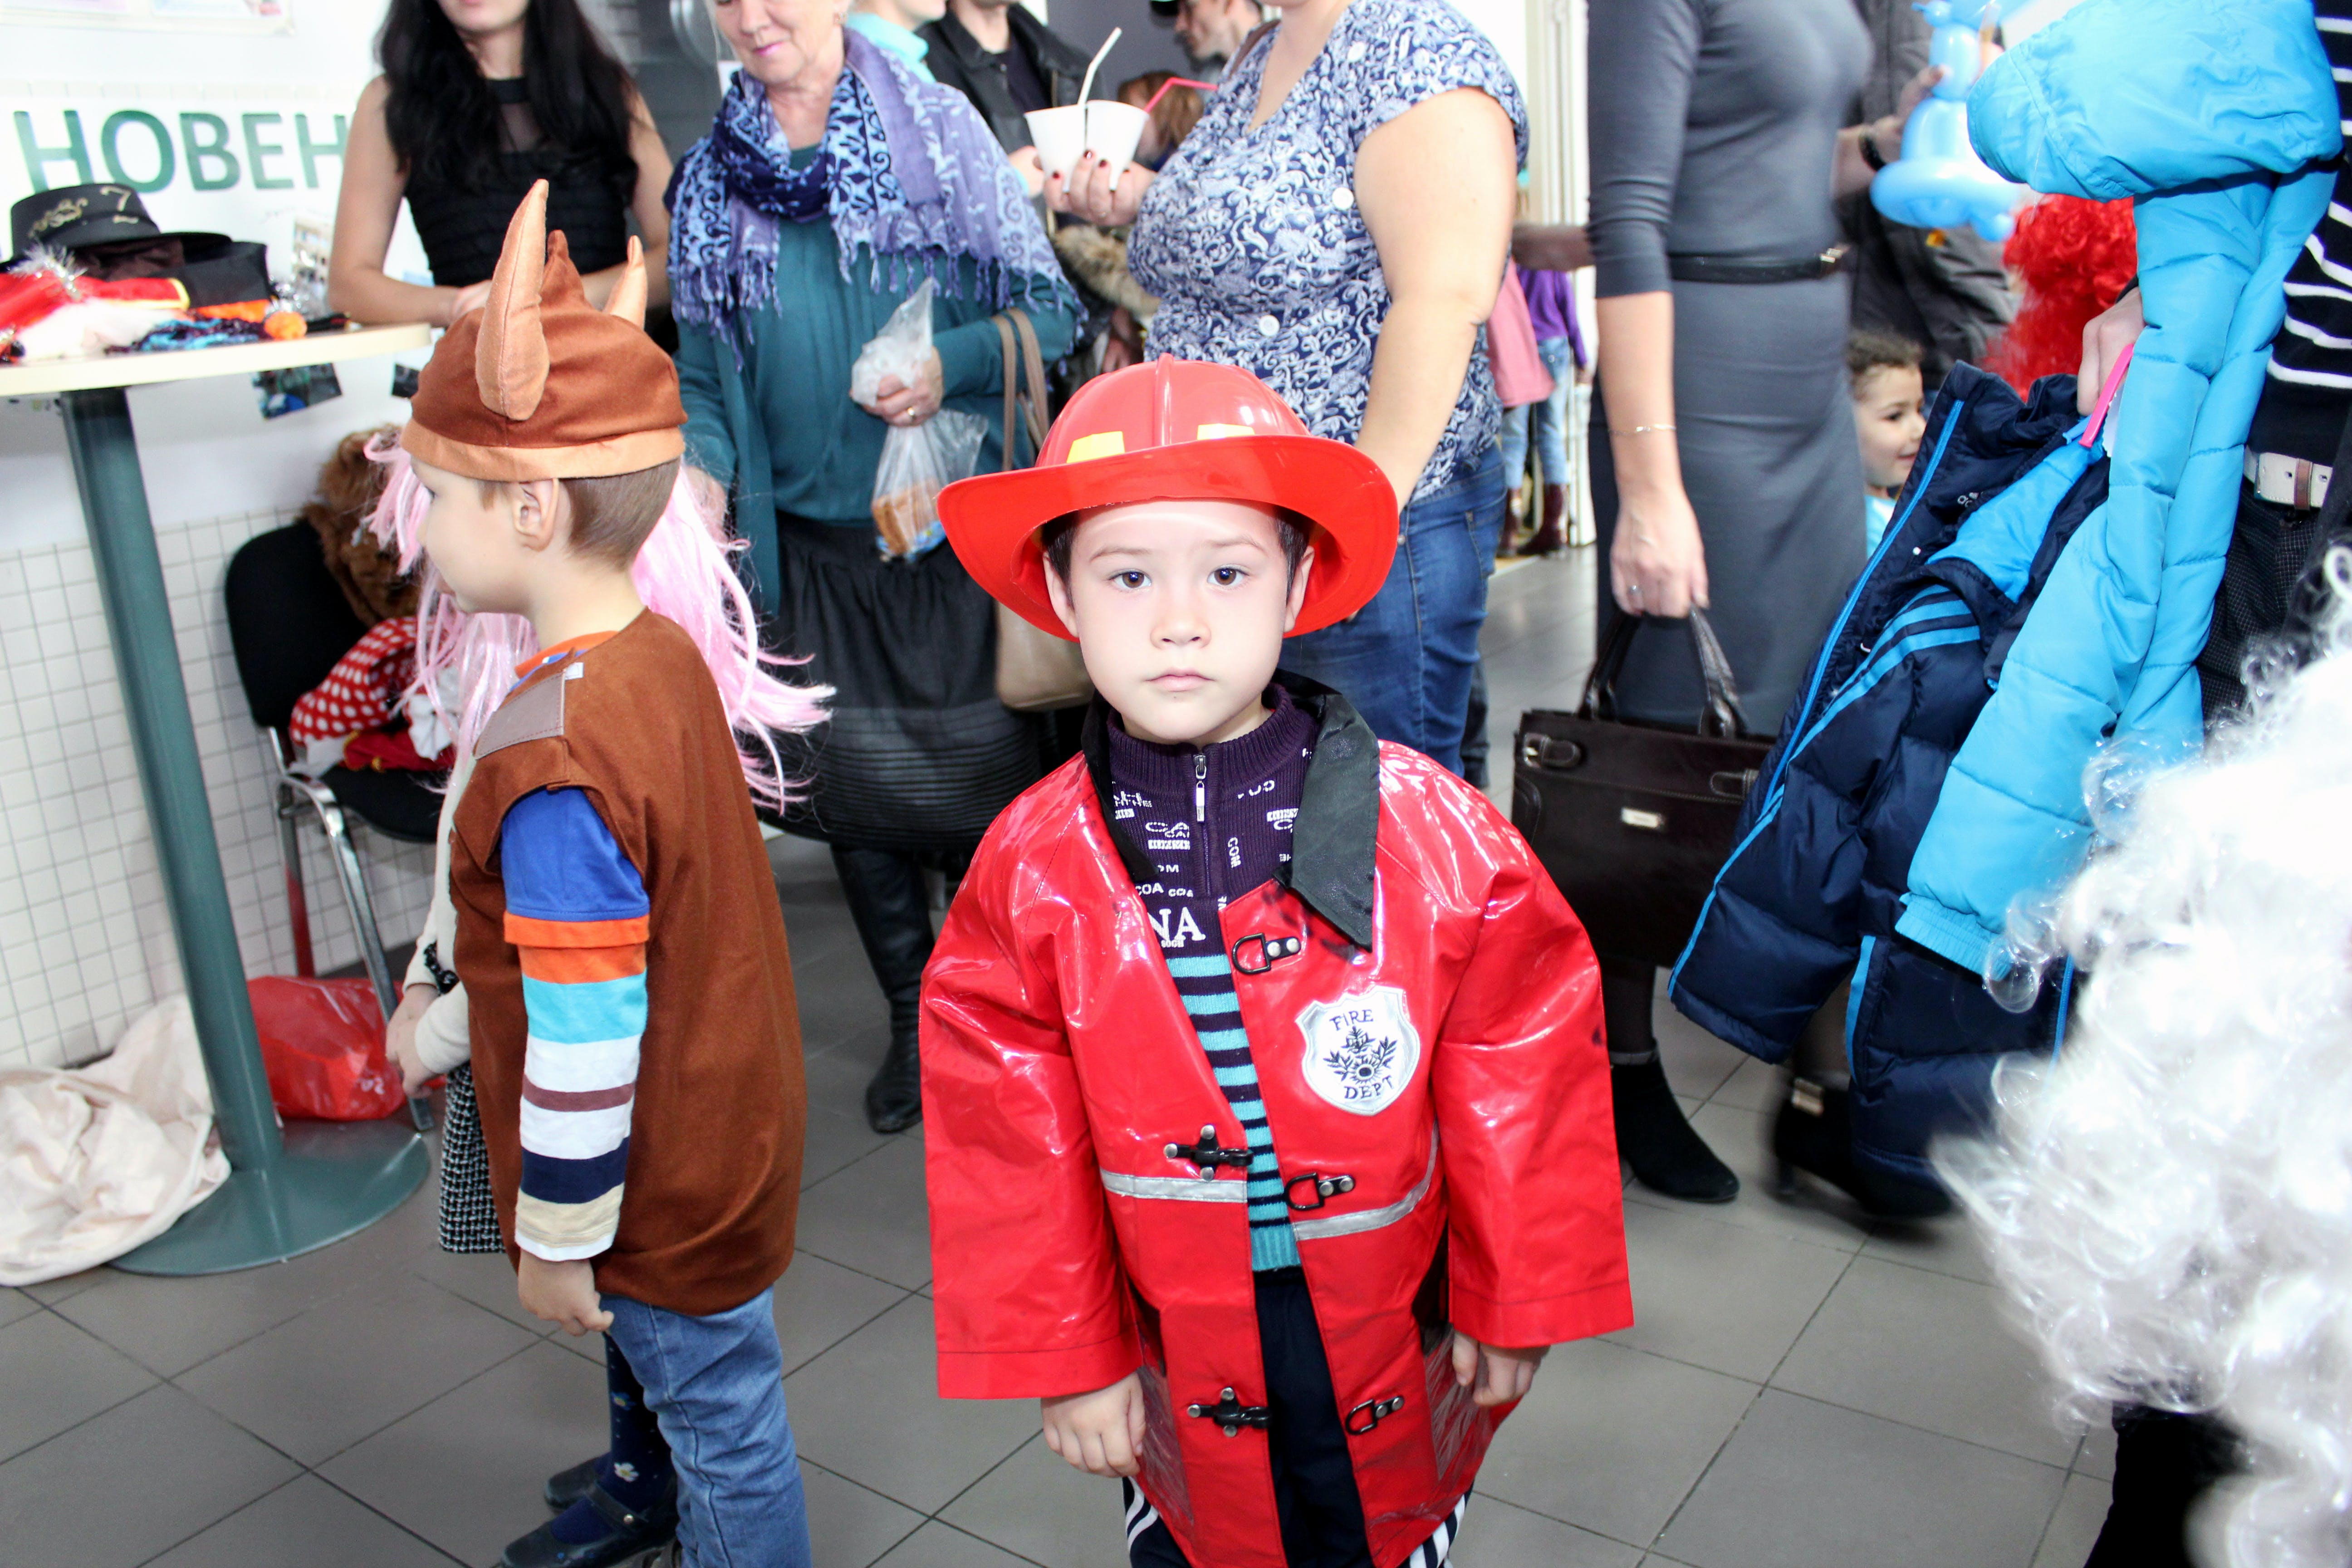 Free stock photo of children, Young fireman